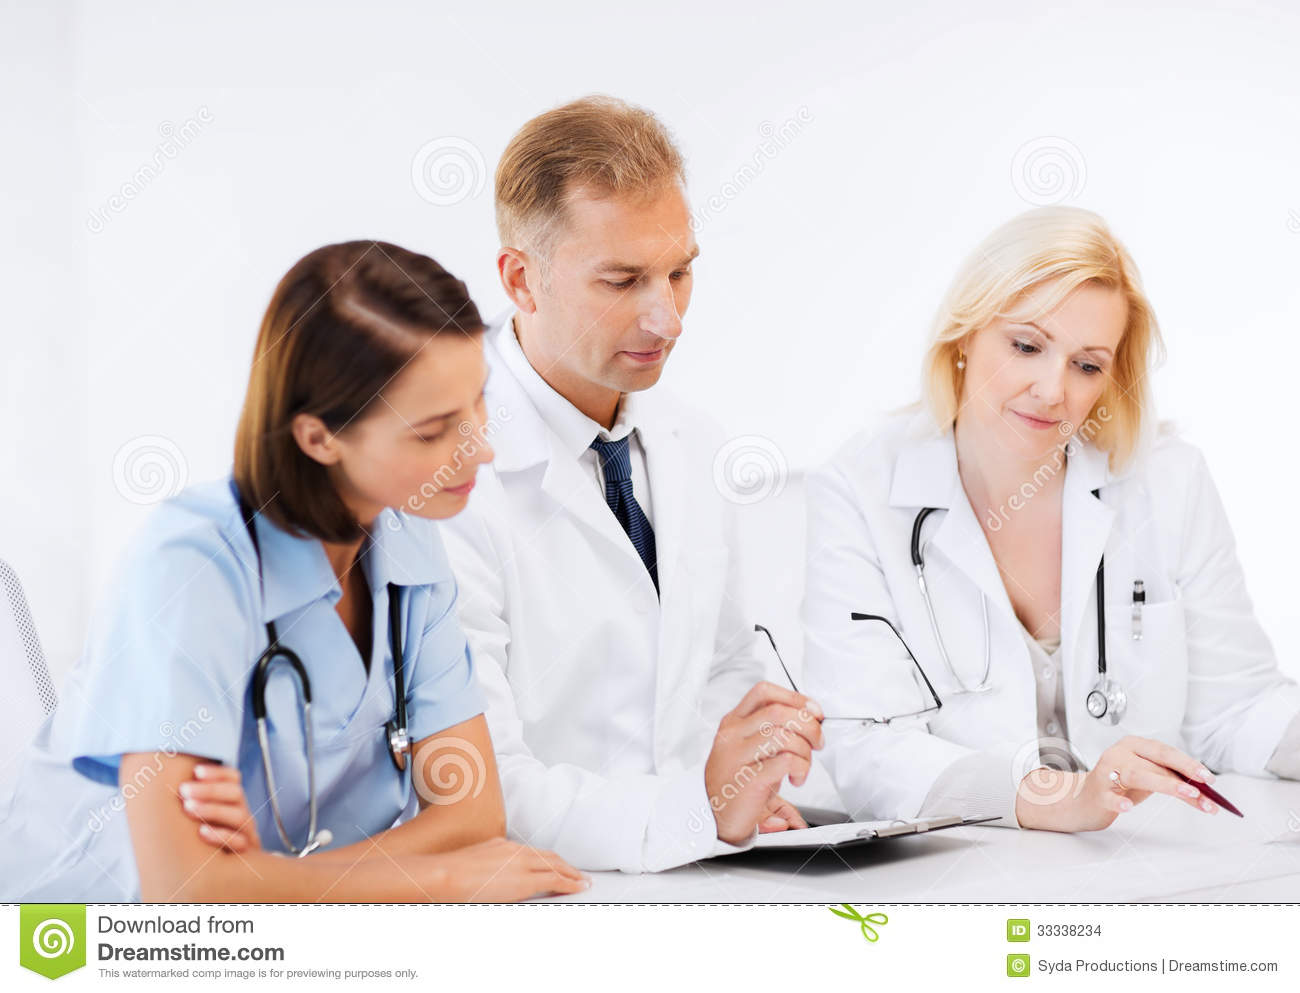 Healthcare And Medical Concept   Team Or Group Of Doctors On Meeting